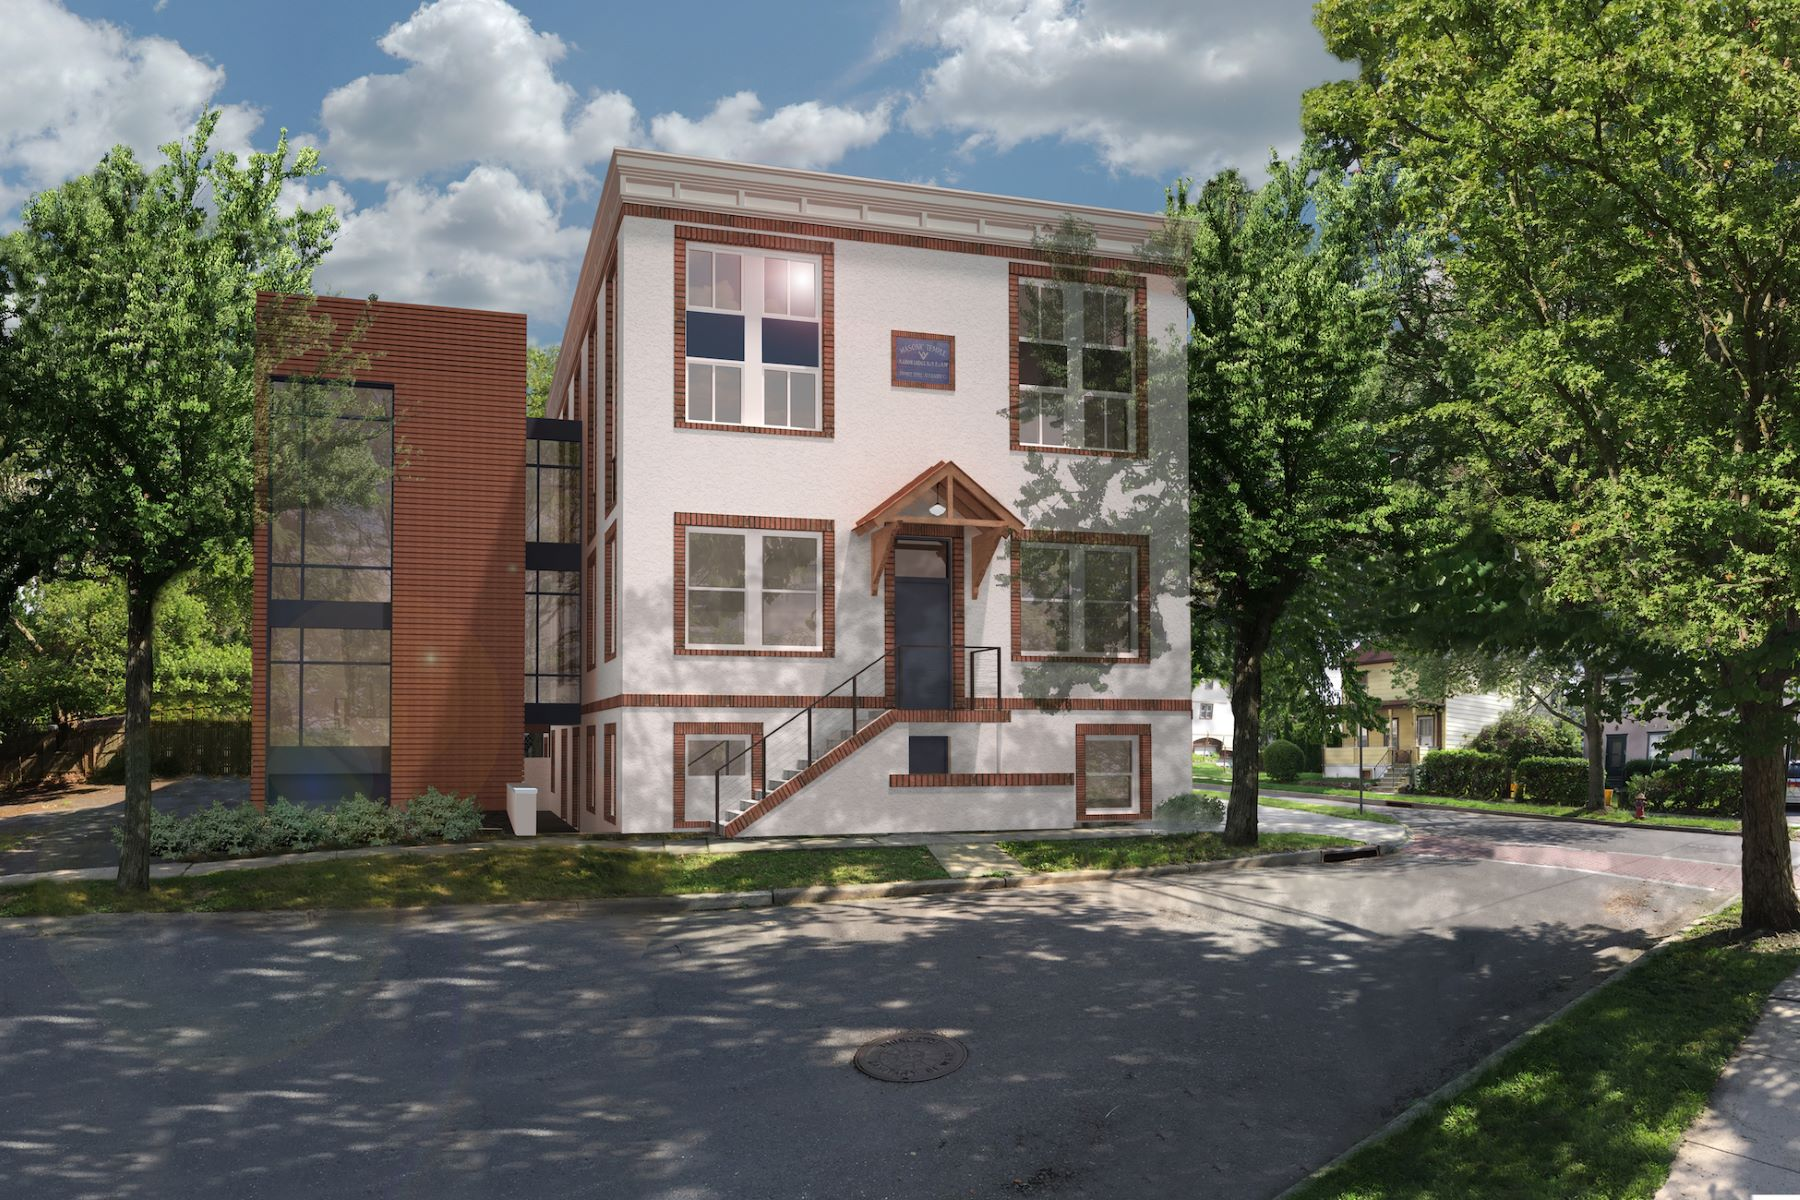 Property for Rent at Welcome to 30 Maclean! 30 Maclean Street Unit 8, Princeton, New Jersey 08542 United States